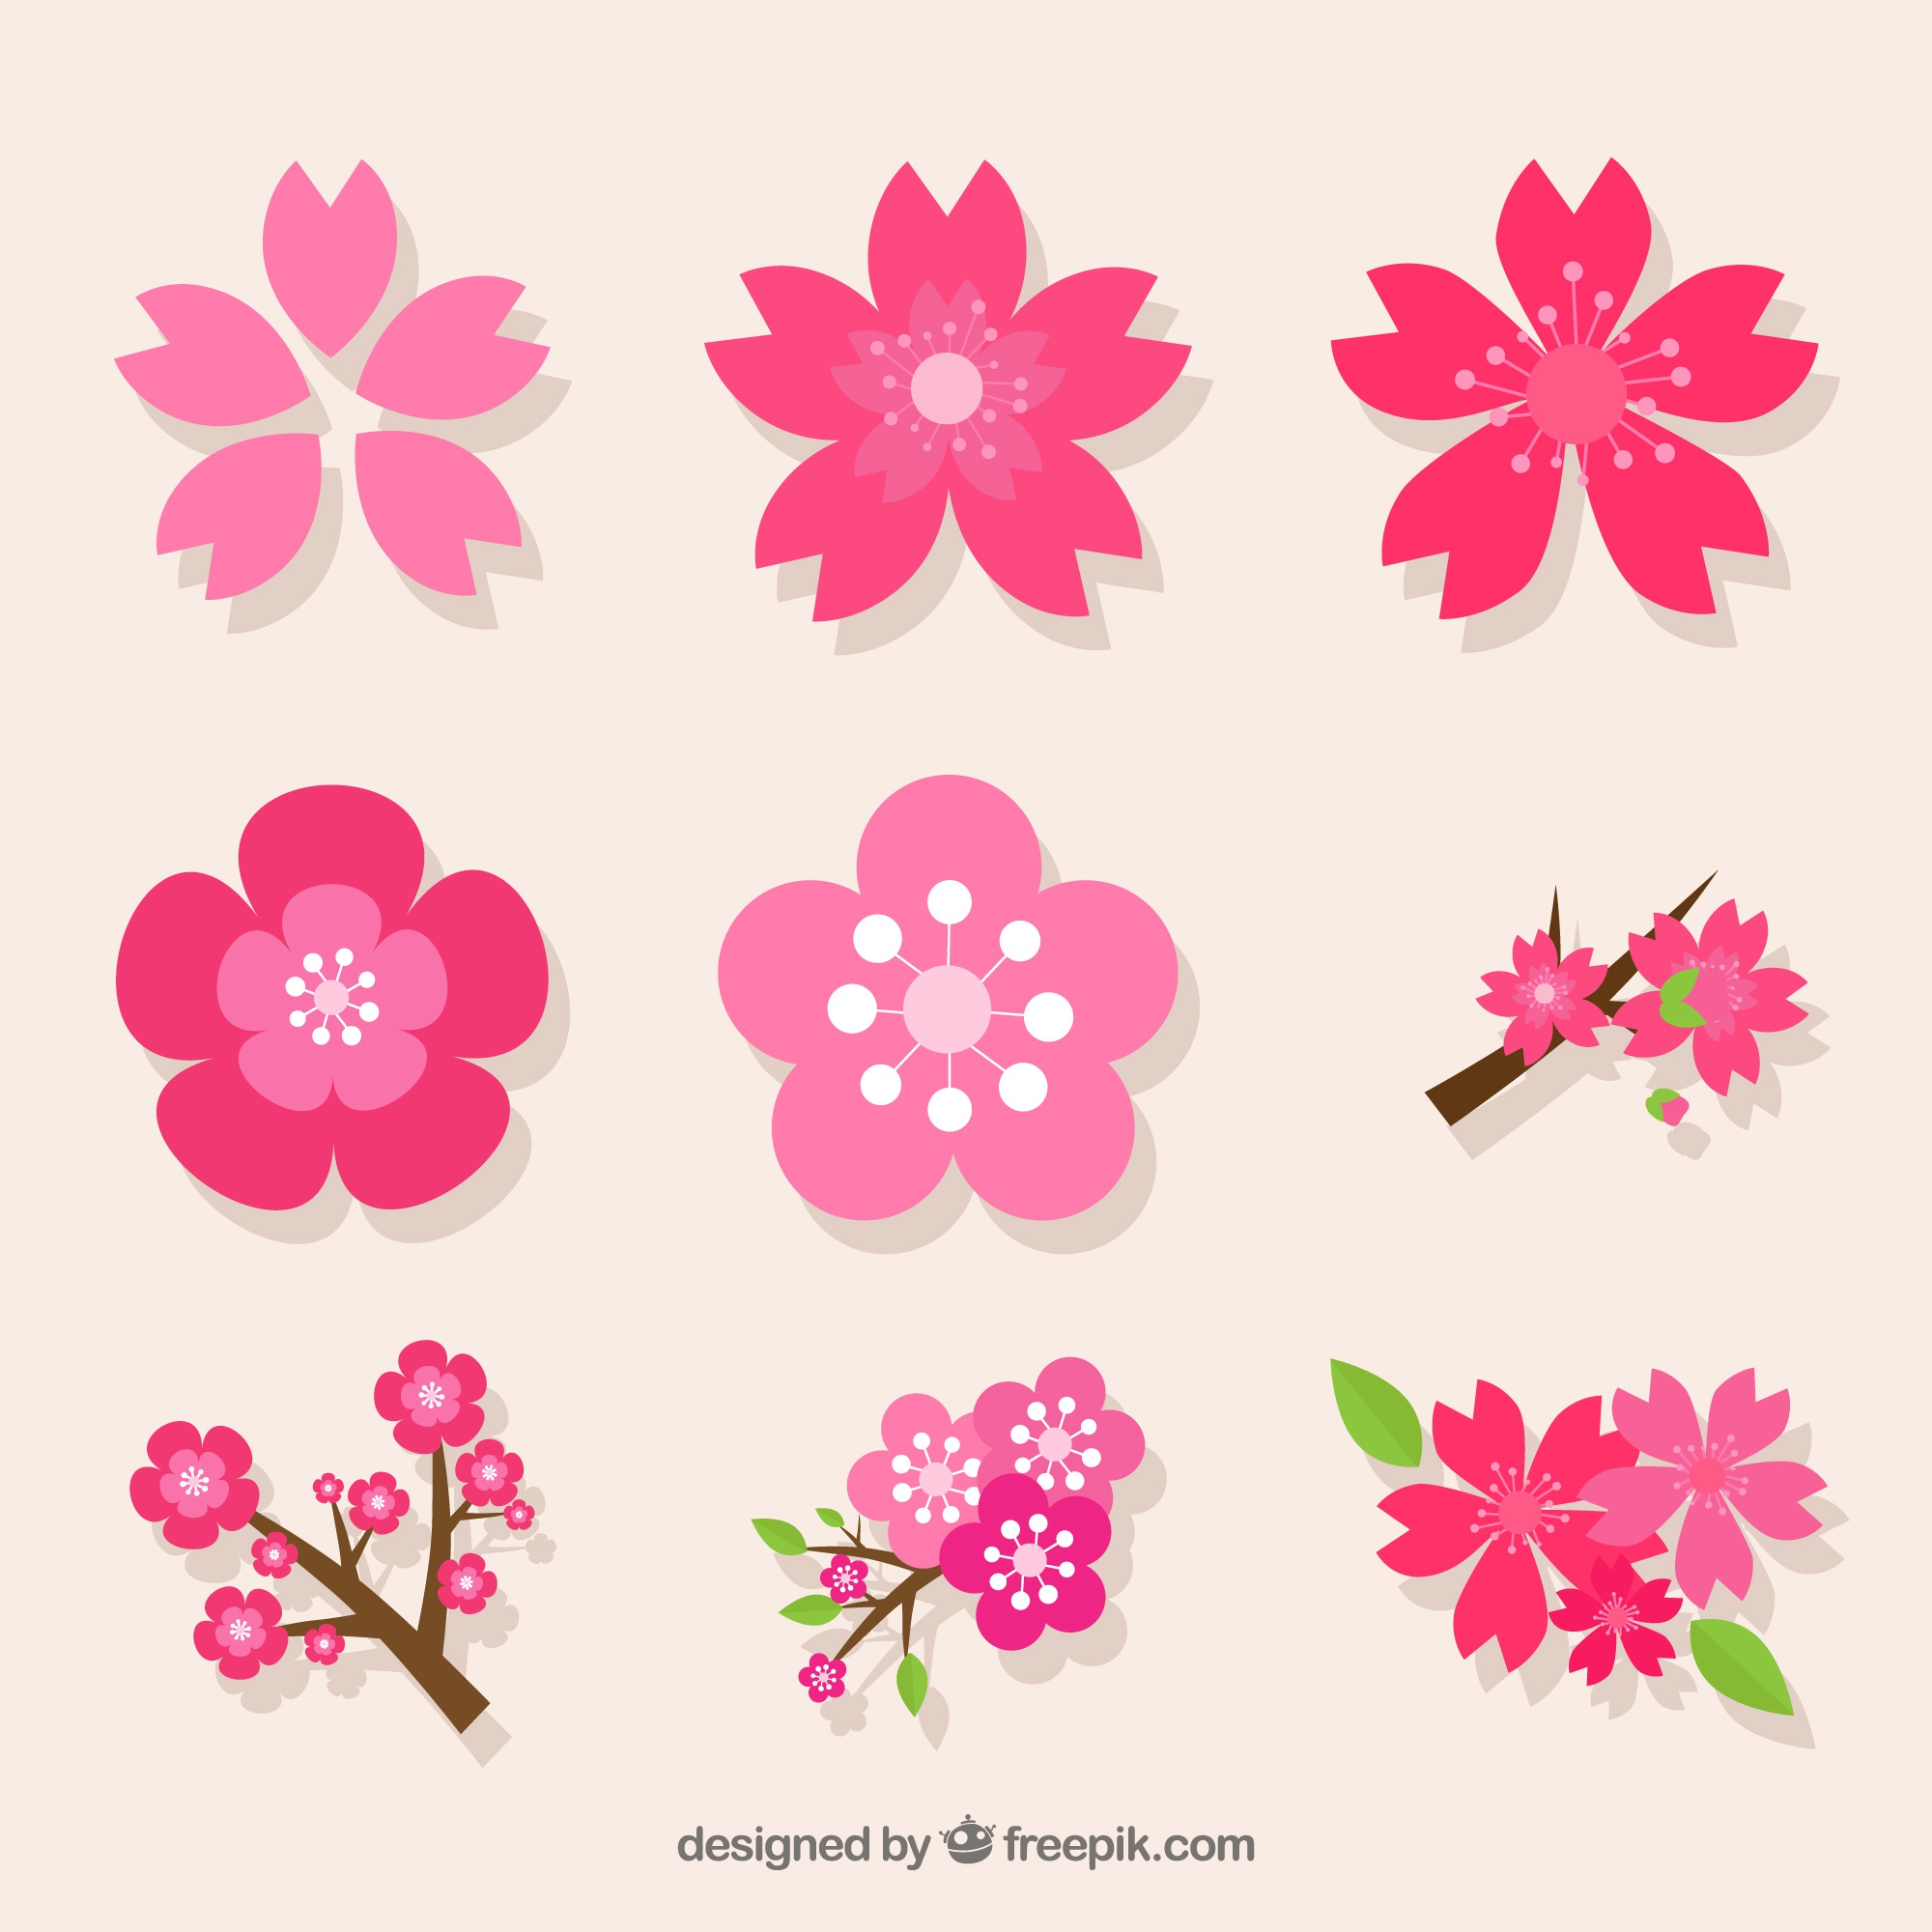 Decorative pack of variety of cherry blossoms